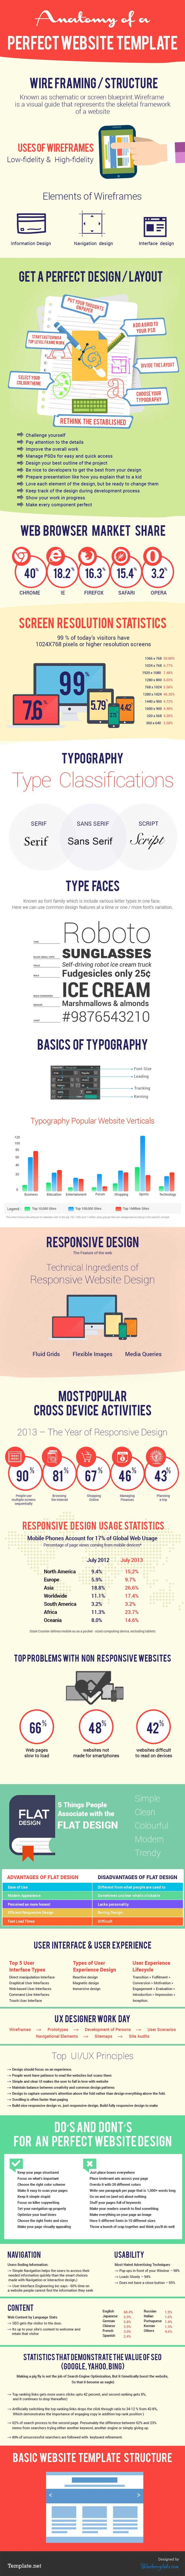 Anatomy of a Perfect Website Template #InfoGraphic